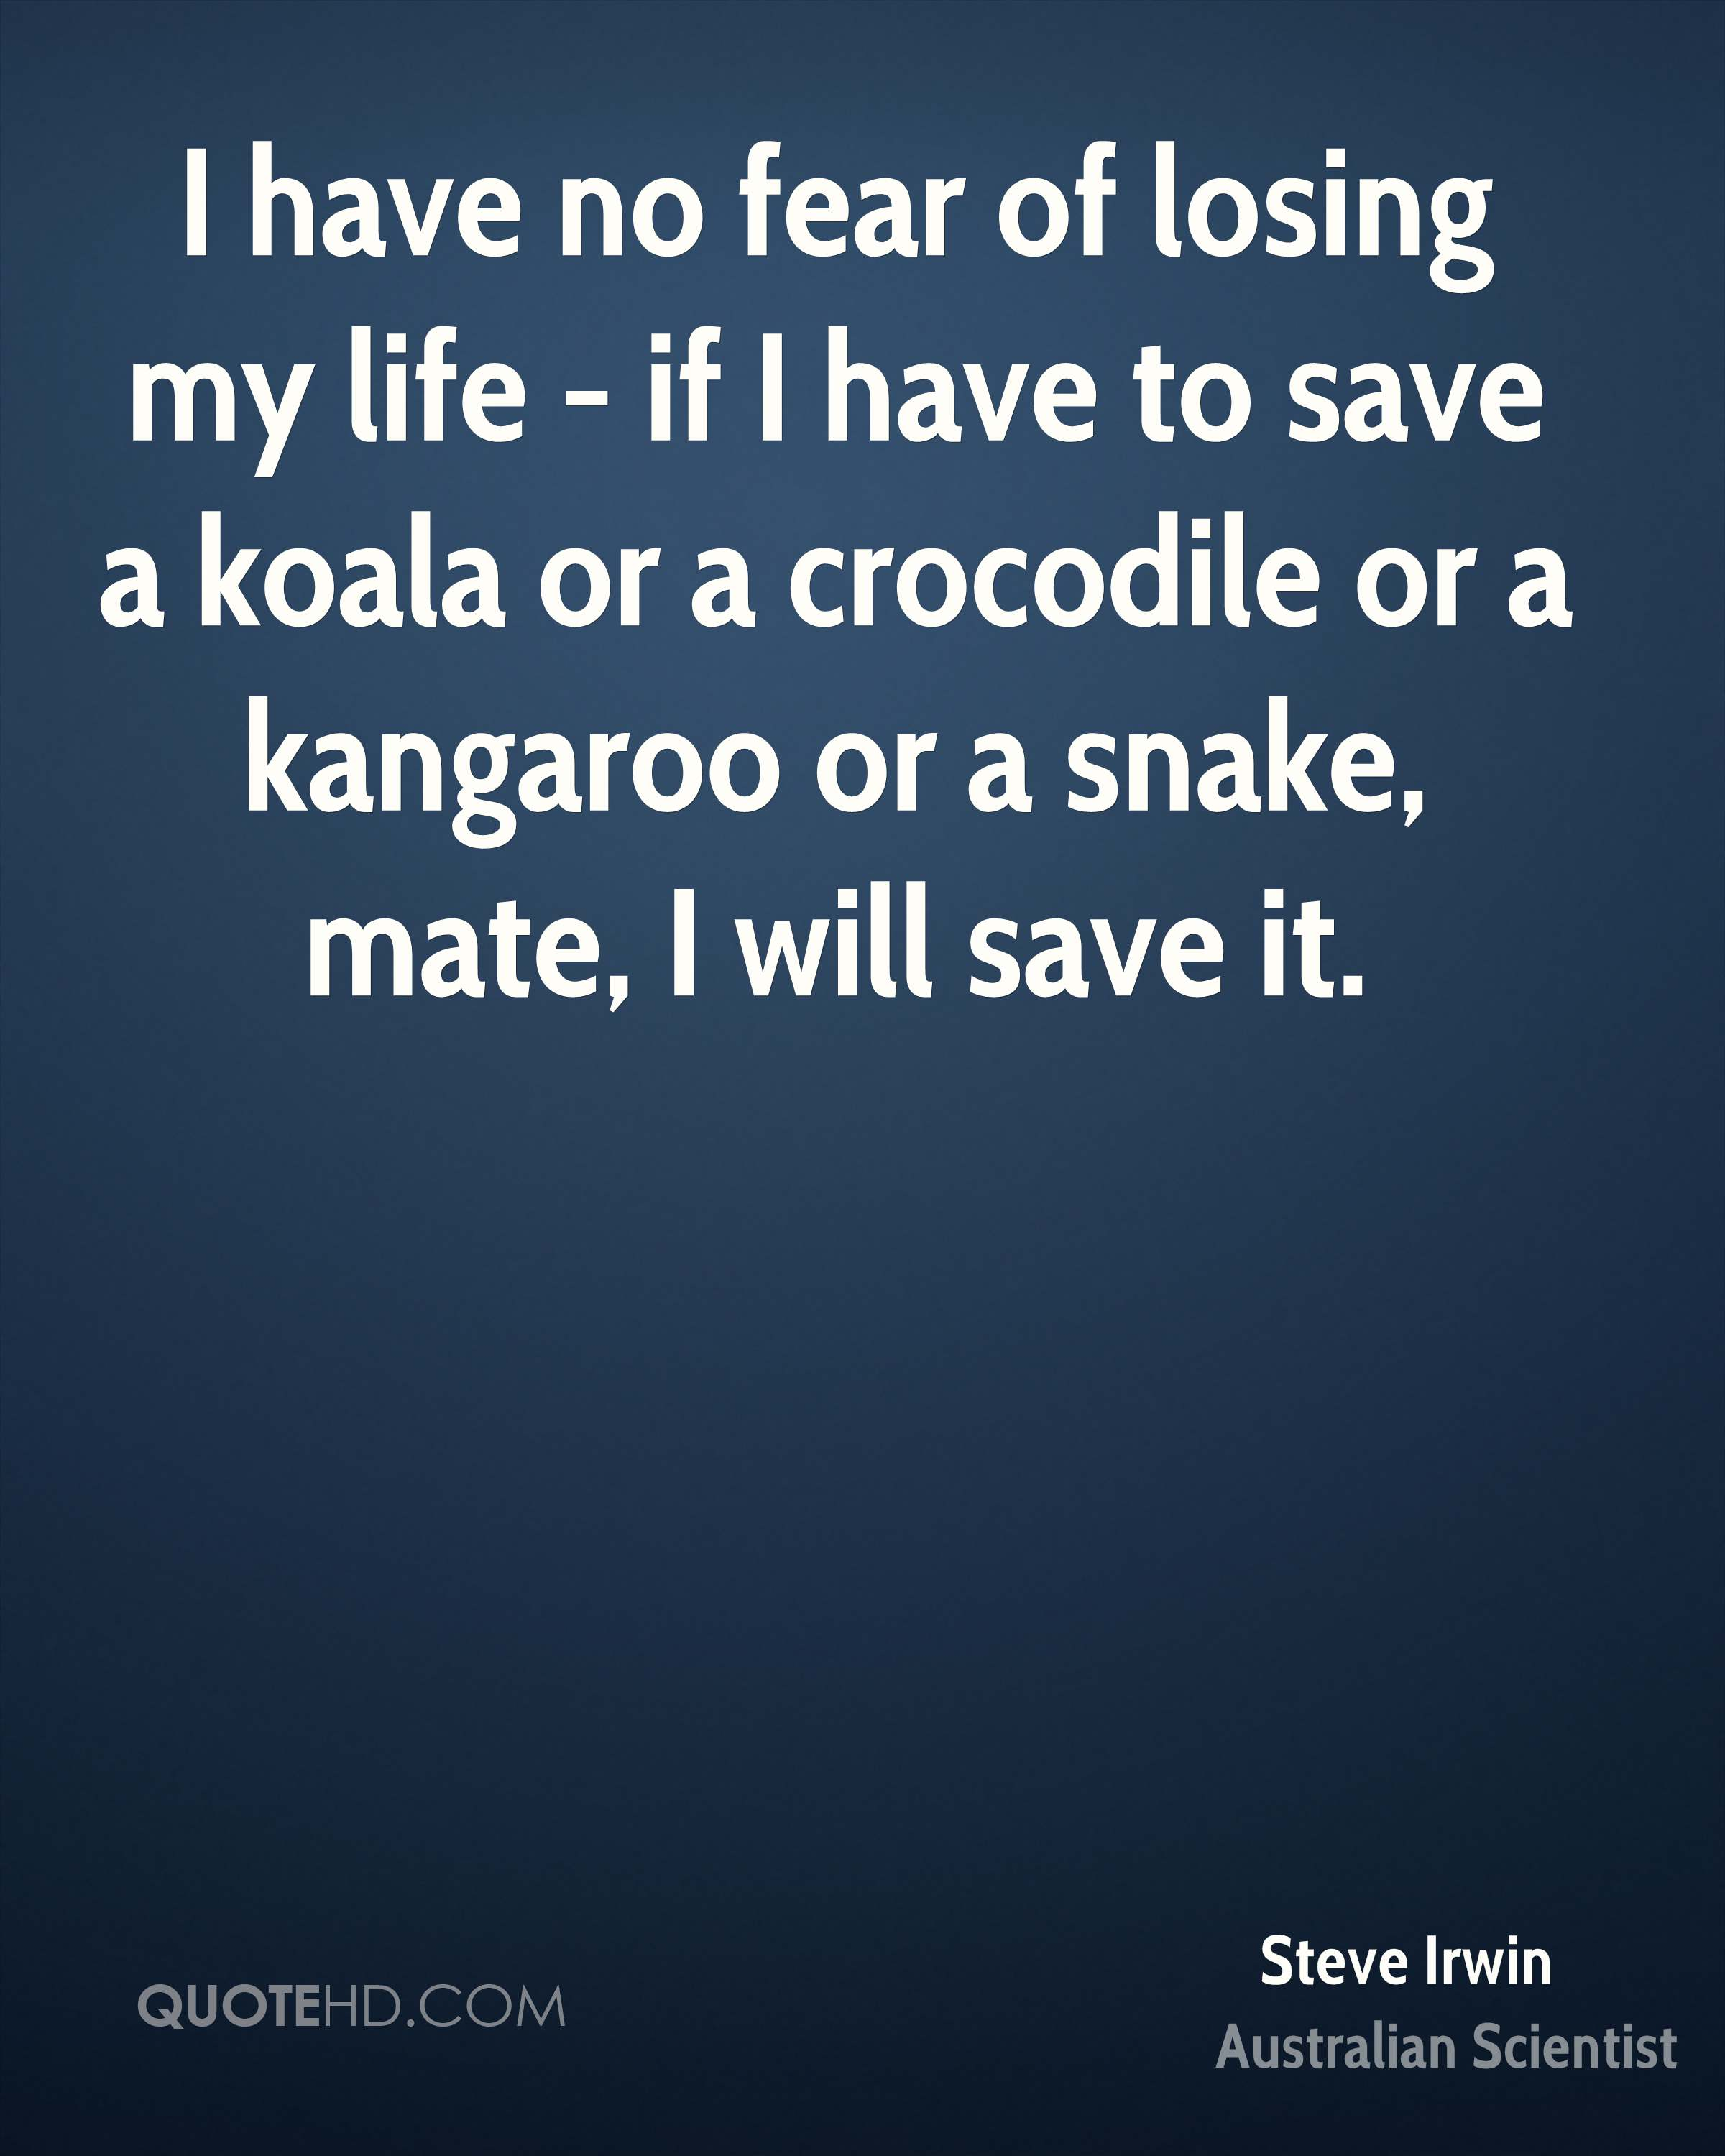 I have no fear of losing my life - if I have to save a koala or a crocodile or a kangaroo or a snake, mate, I will save it.